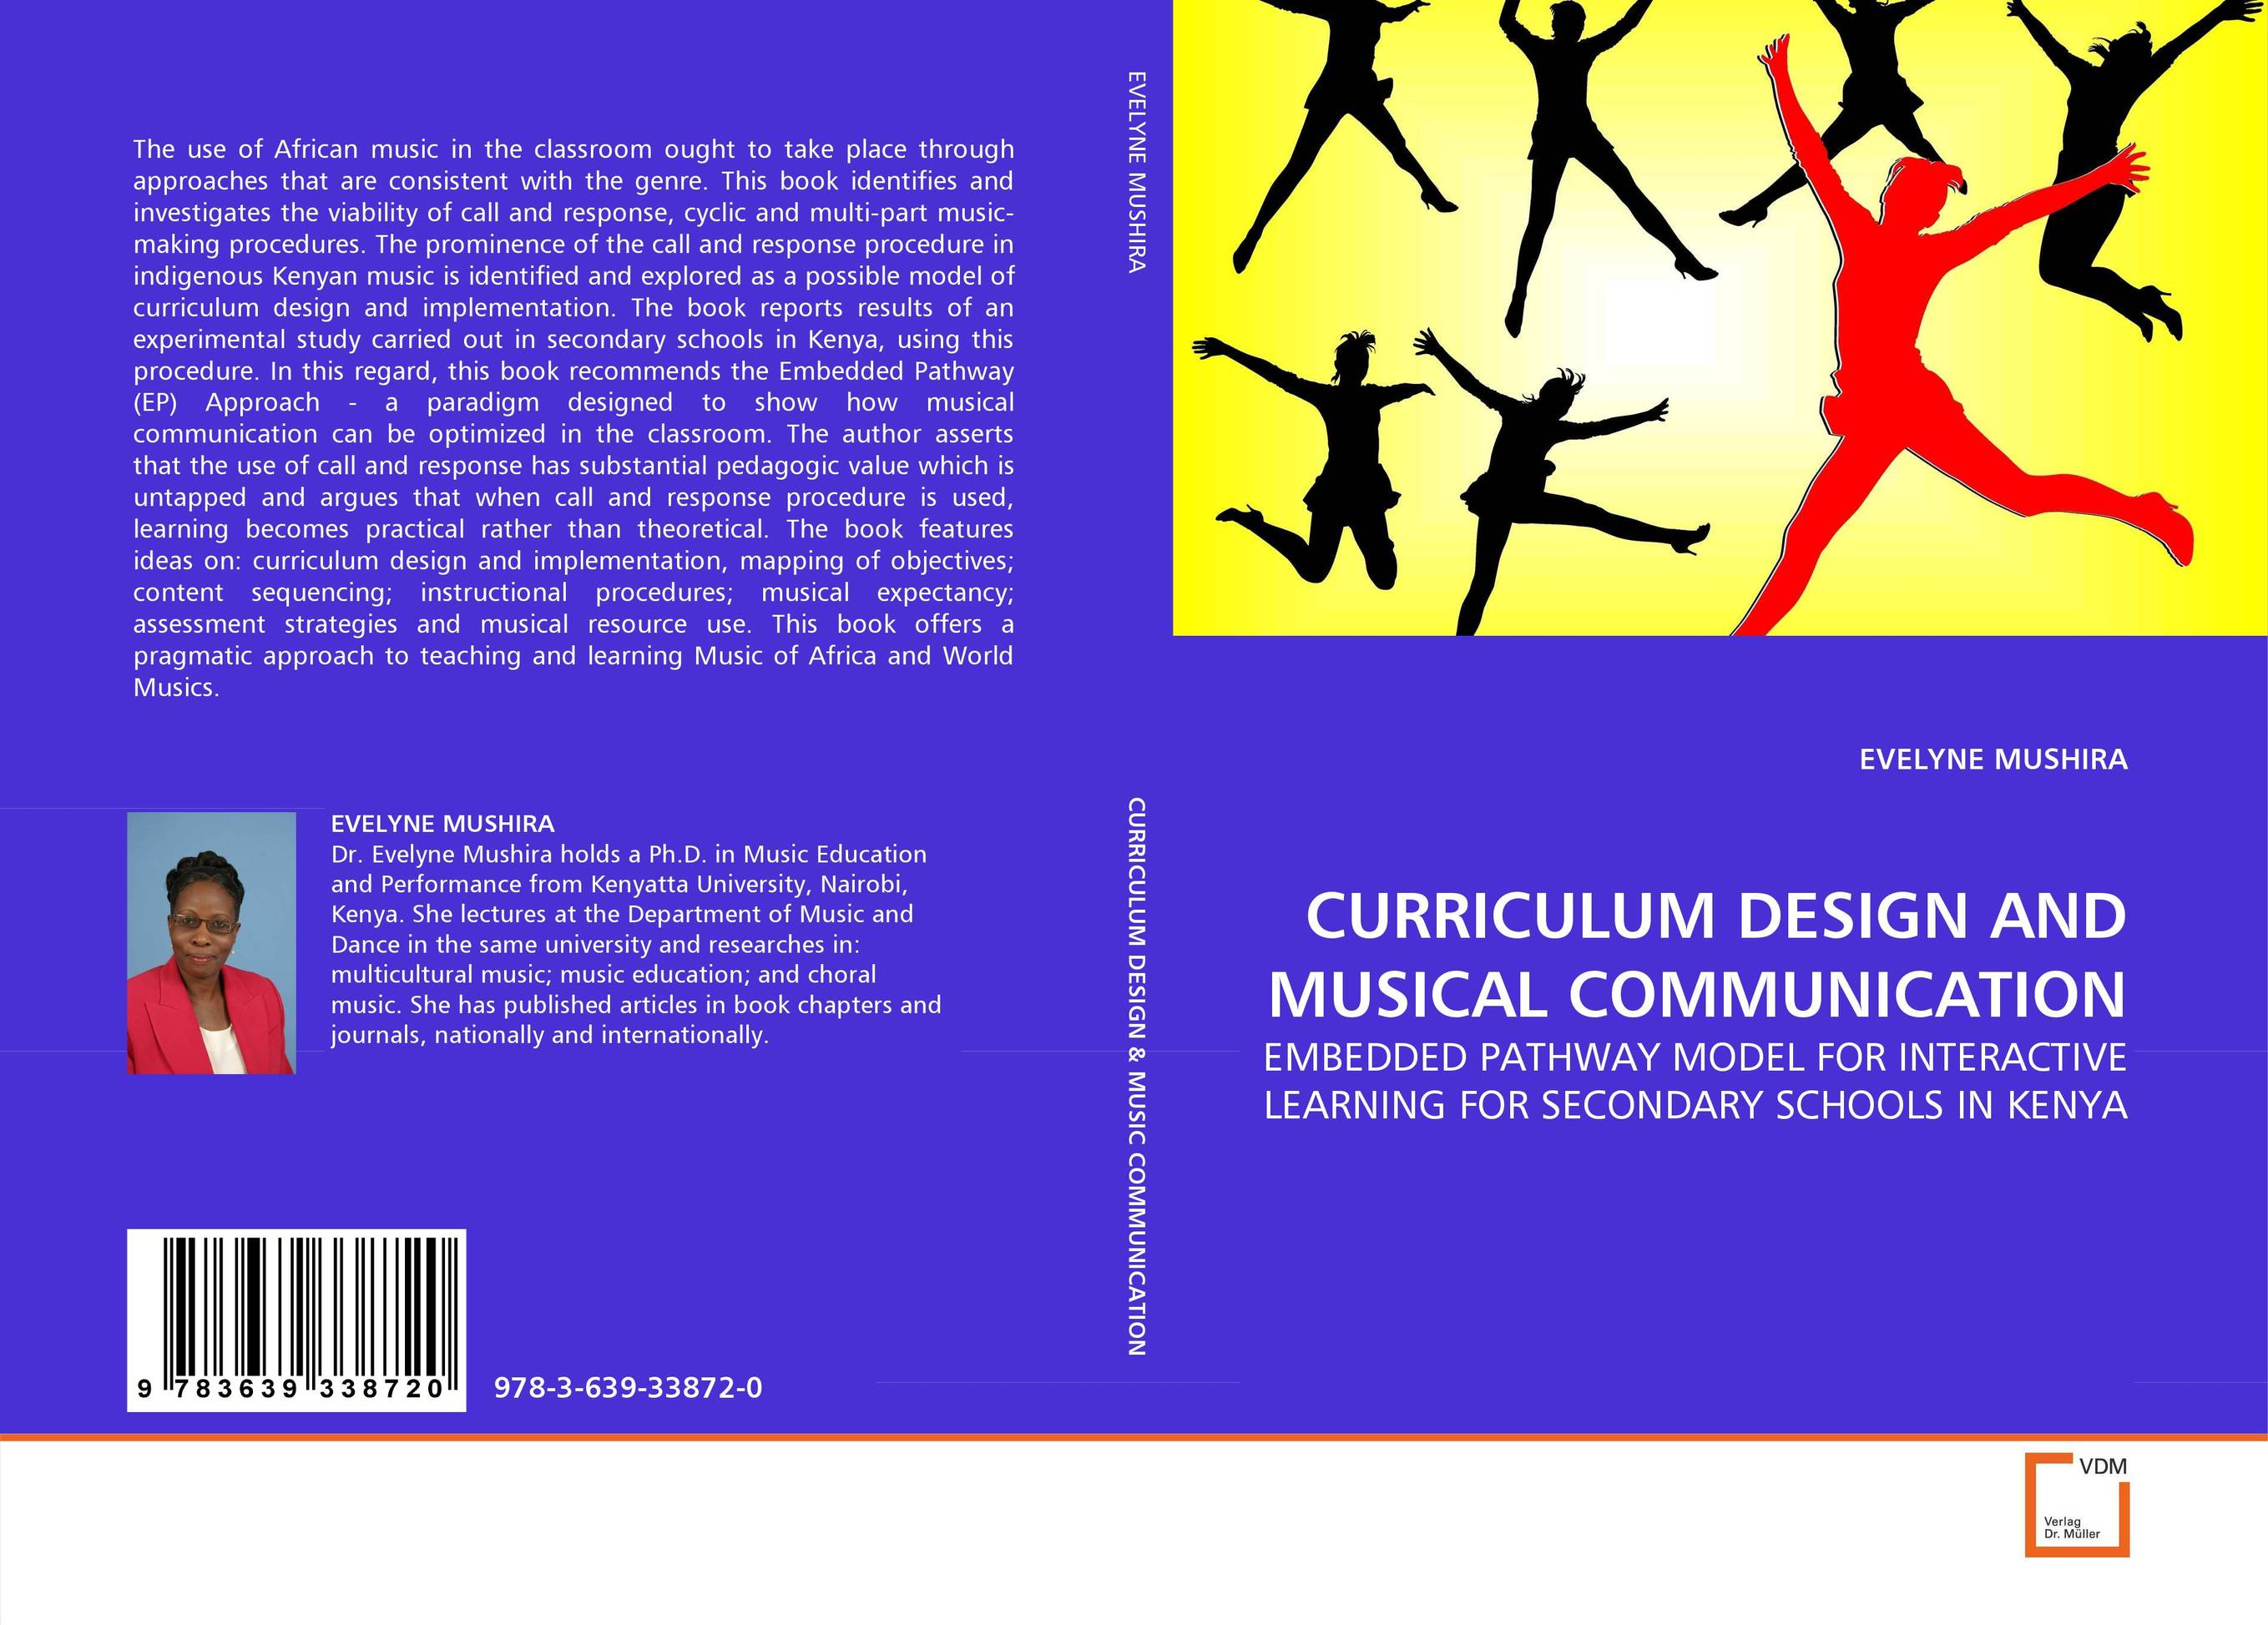 CURRICULUM DESIGN AND MUSICAL COMMUNICATION peter changilwa artisan and craft curriculum implementation in kenya